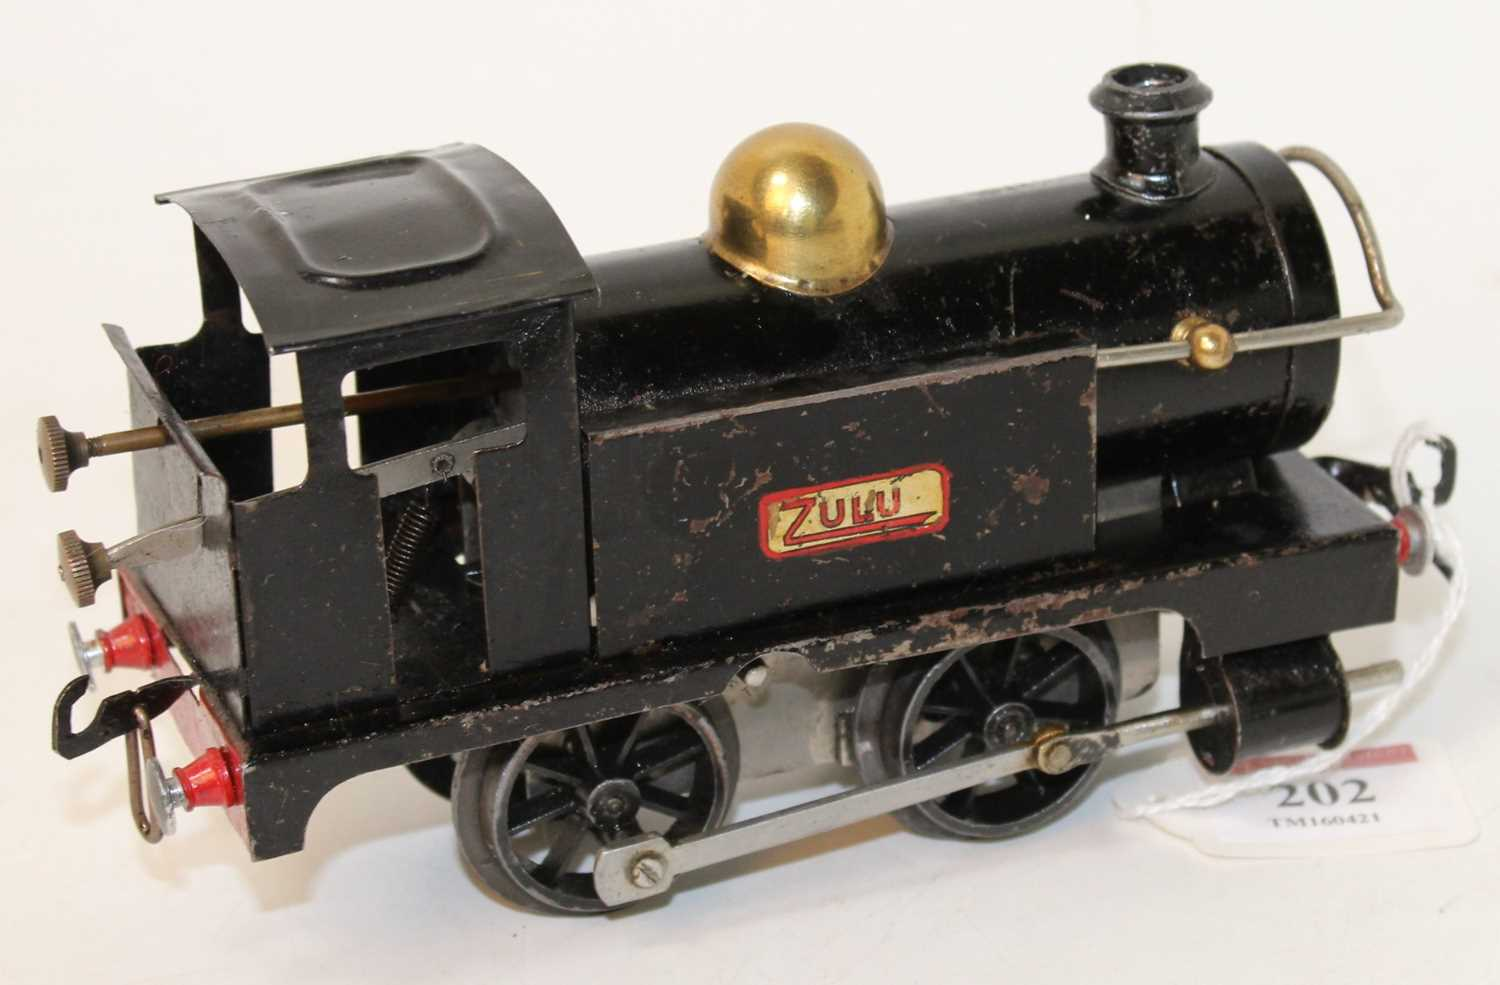 1922-3 No. 1 tank loco 'Zulu' plain black, rods painted silver, some dents and noticeable chips ( - Image 2 of 2